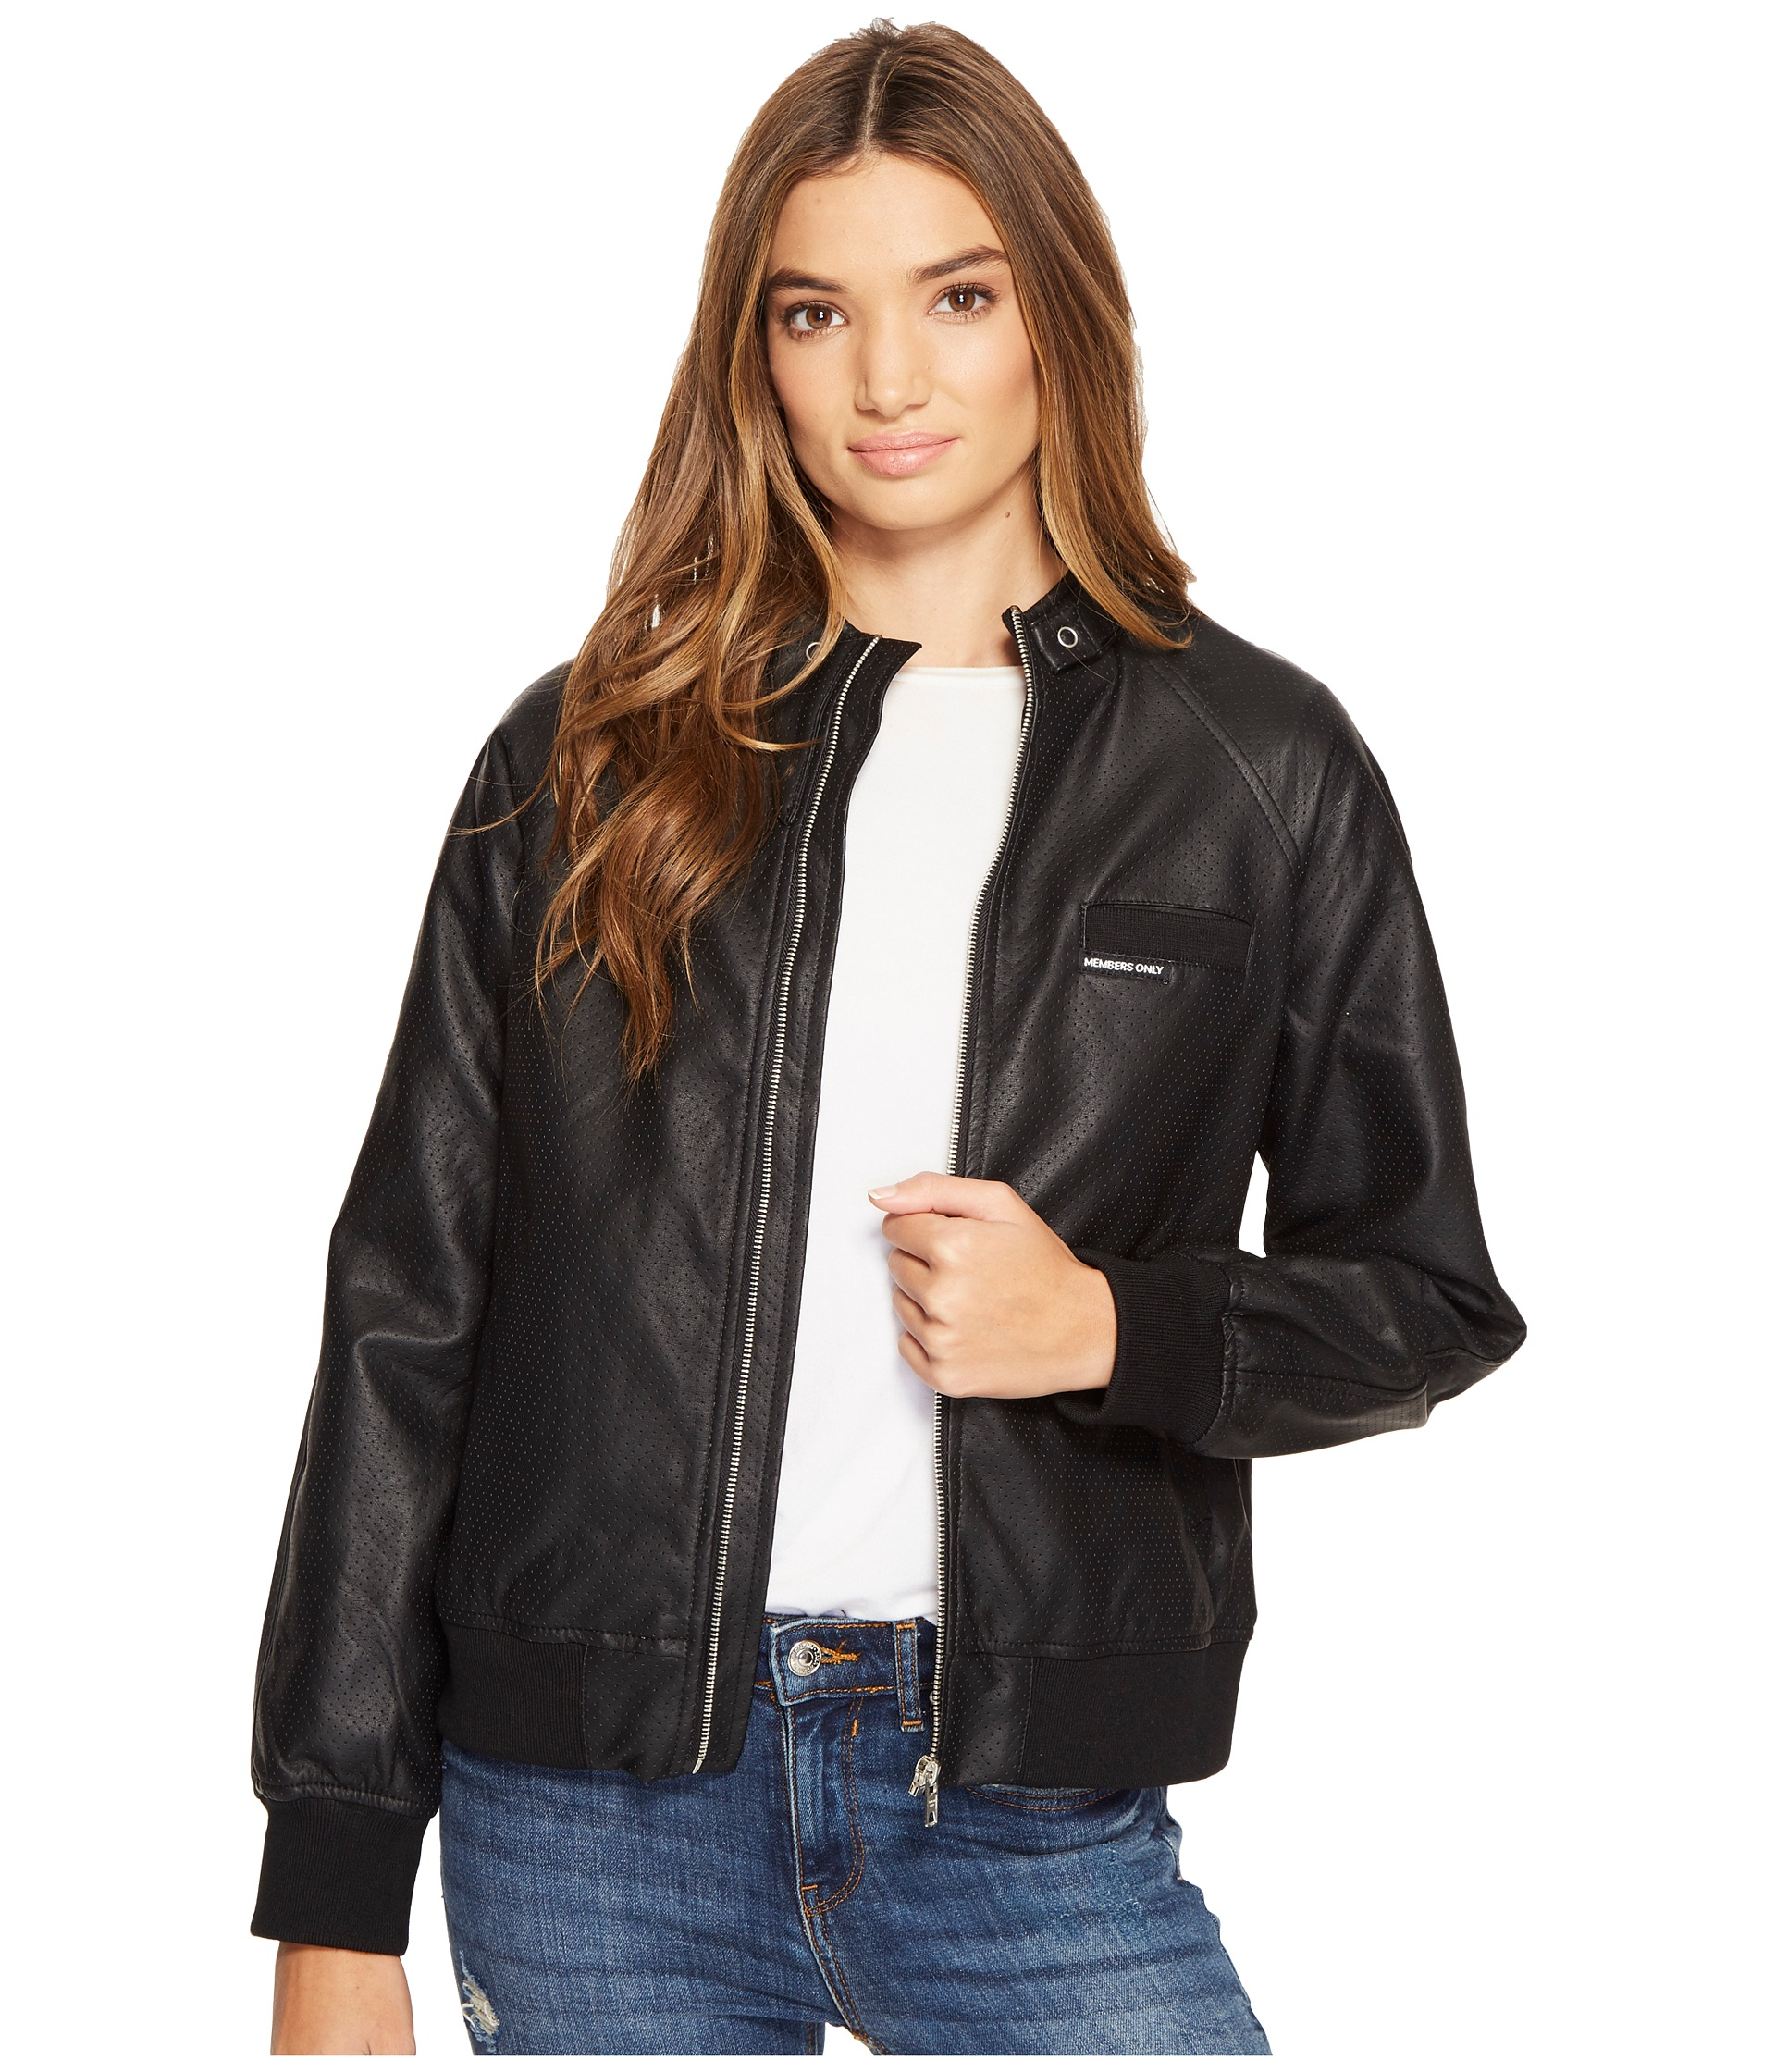 Members Only Faux Leather Bomber Jacket Black Black | Shipped